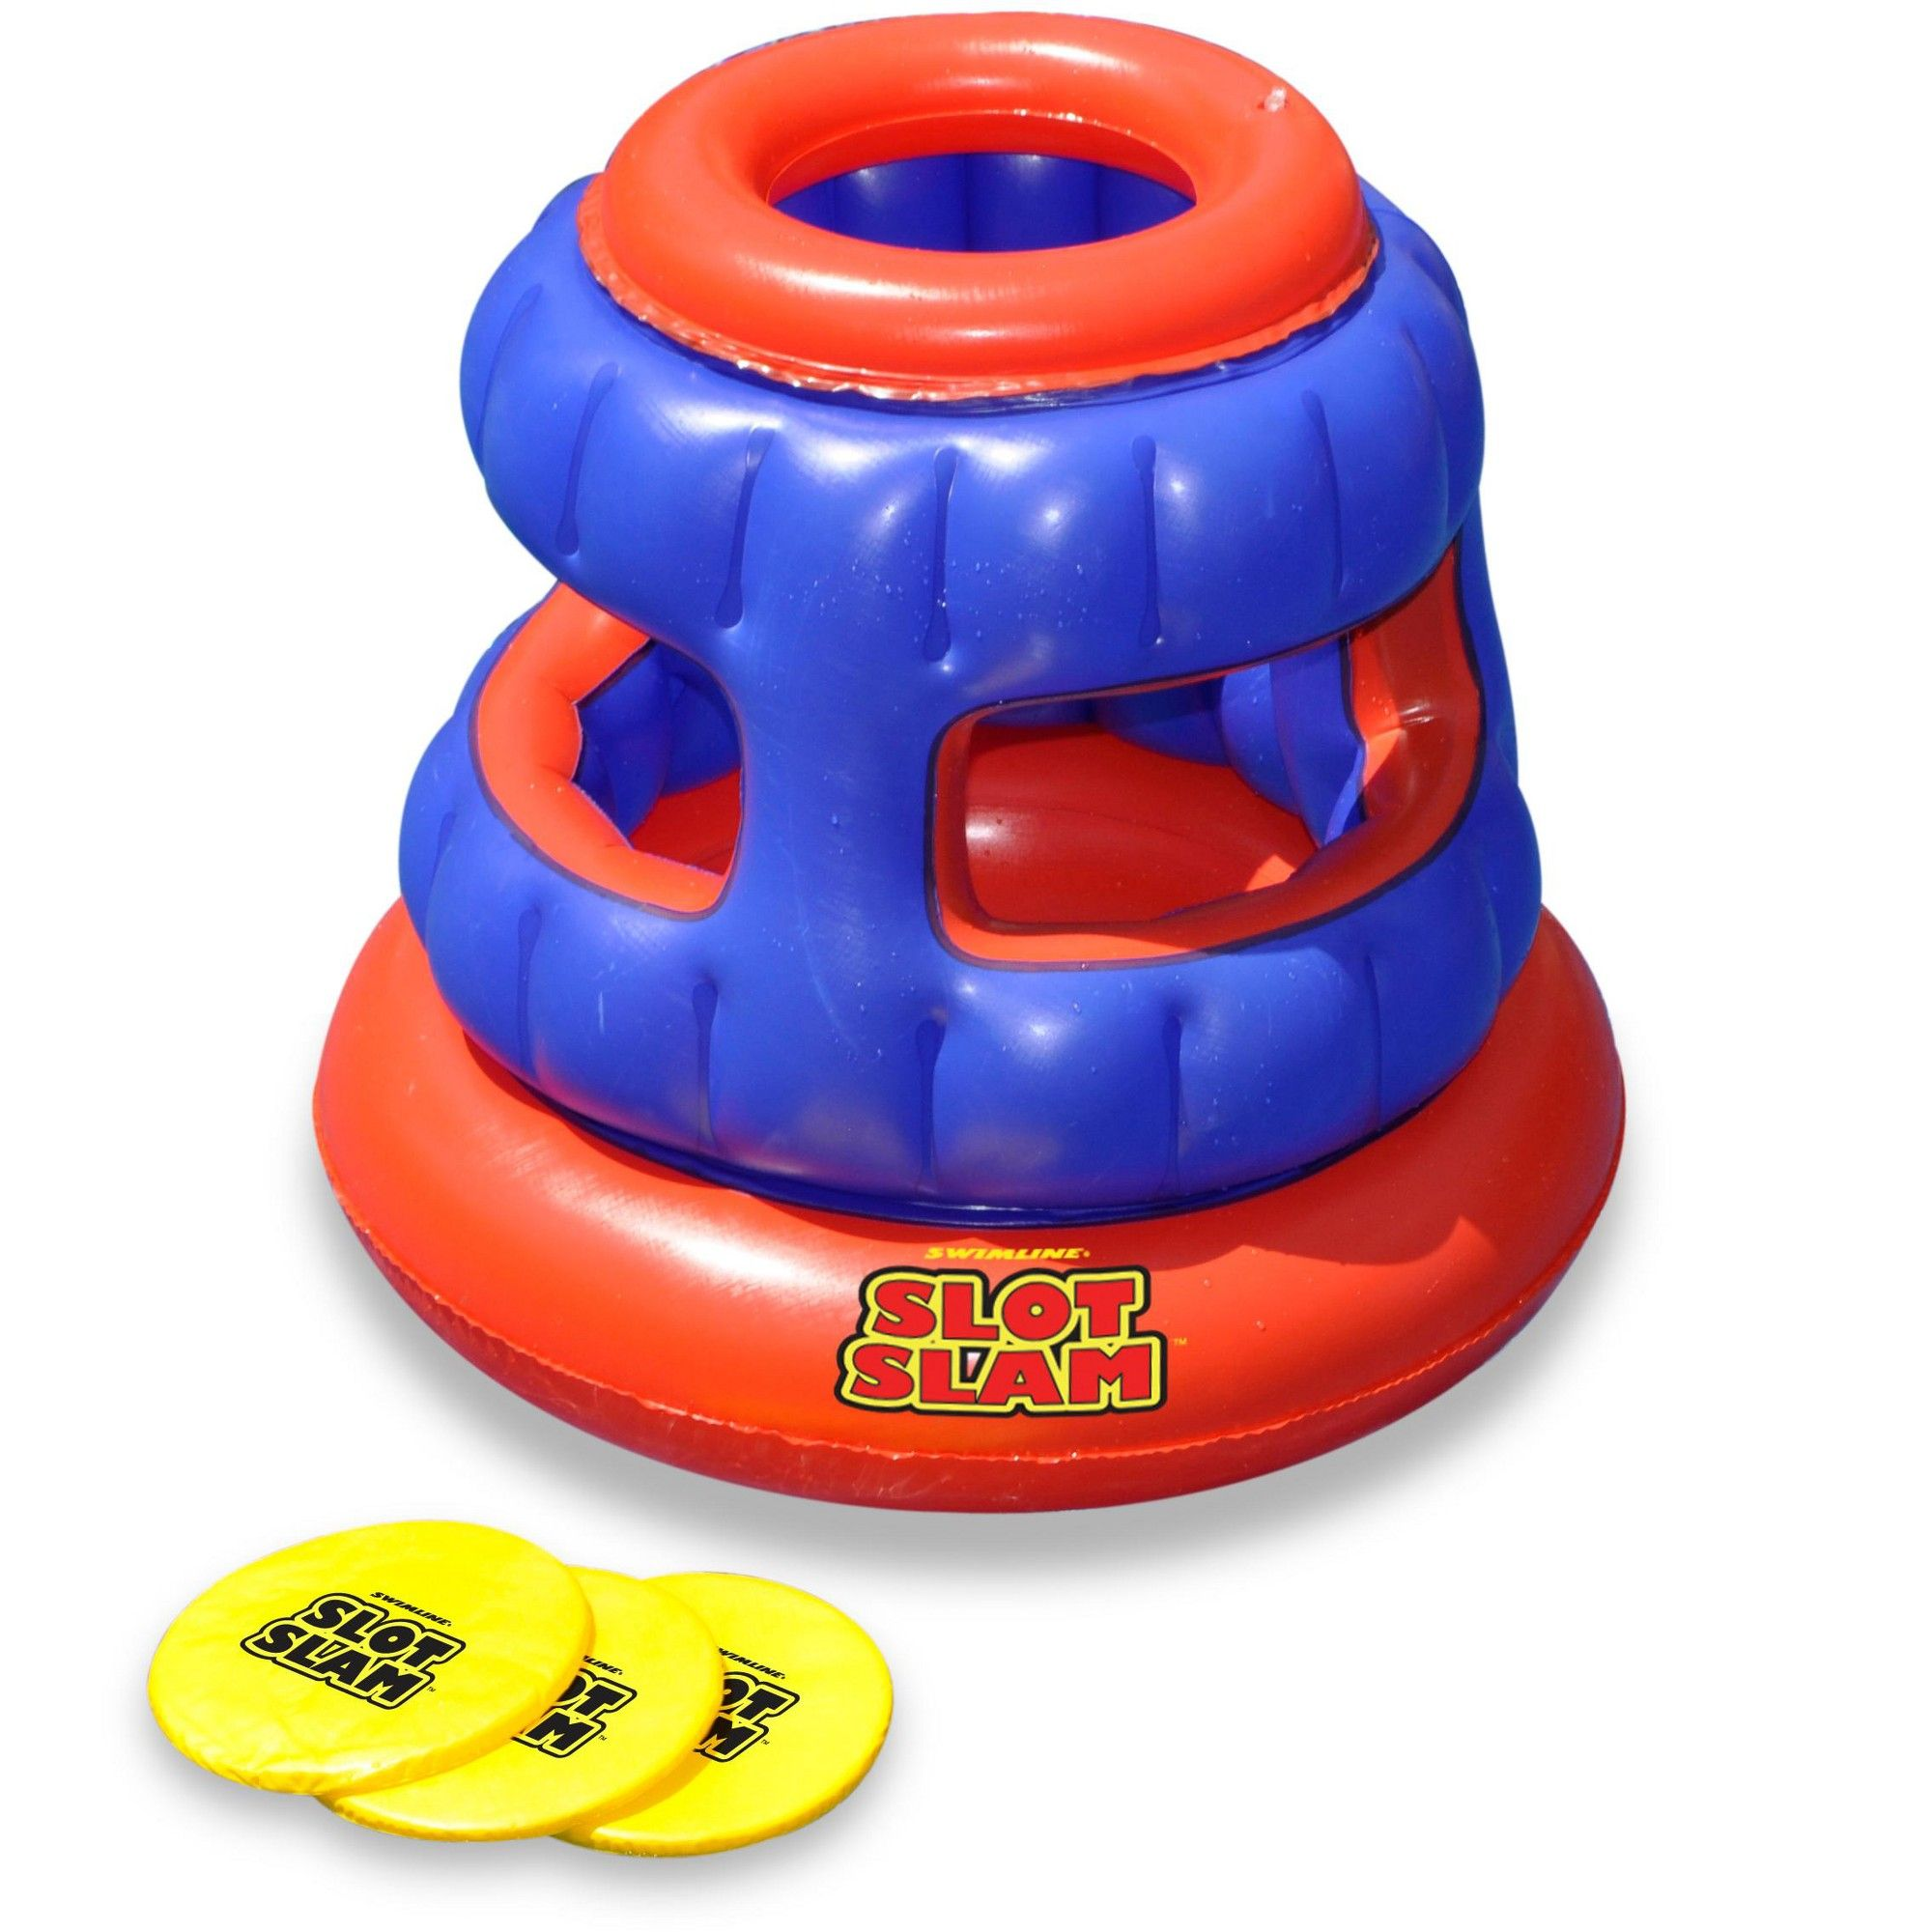 Swimline 90286 Slot Slam Disc Toss Inflatable Floating Swimming Pool Fun